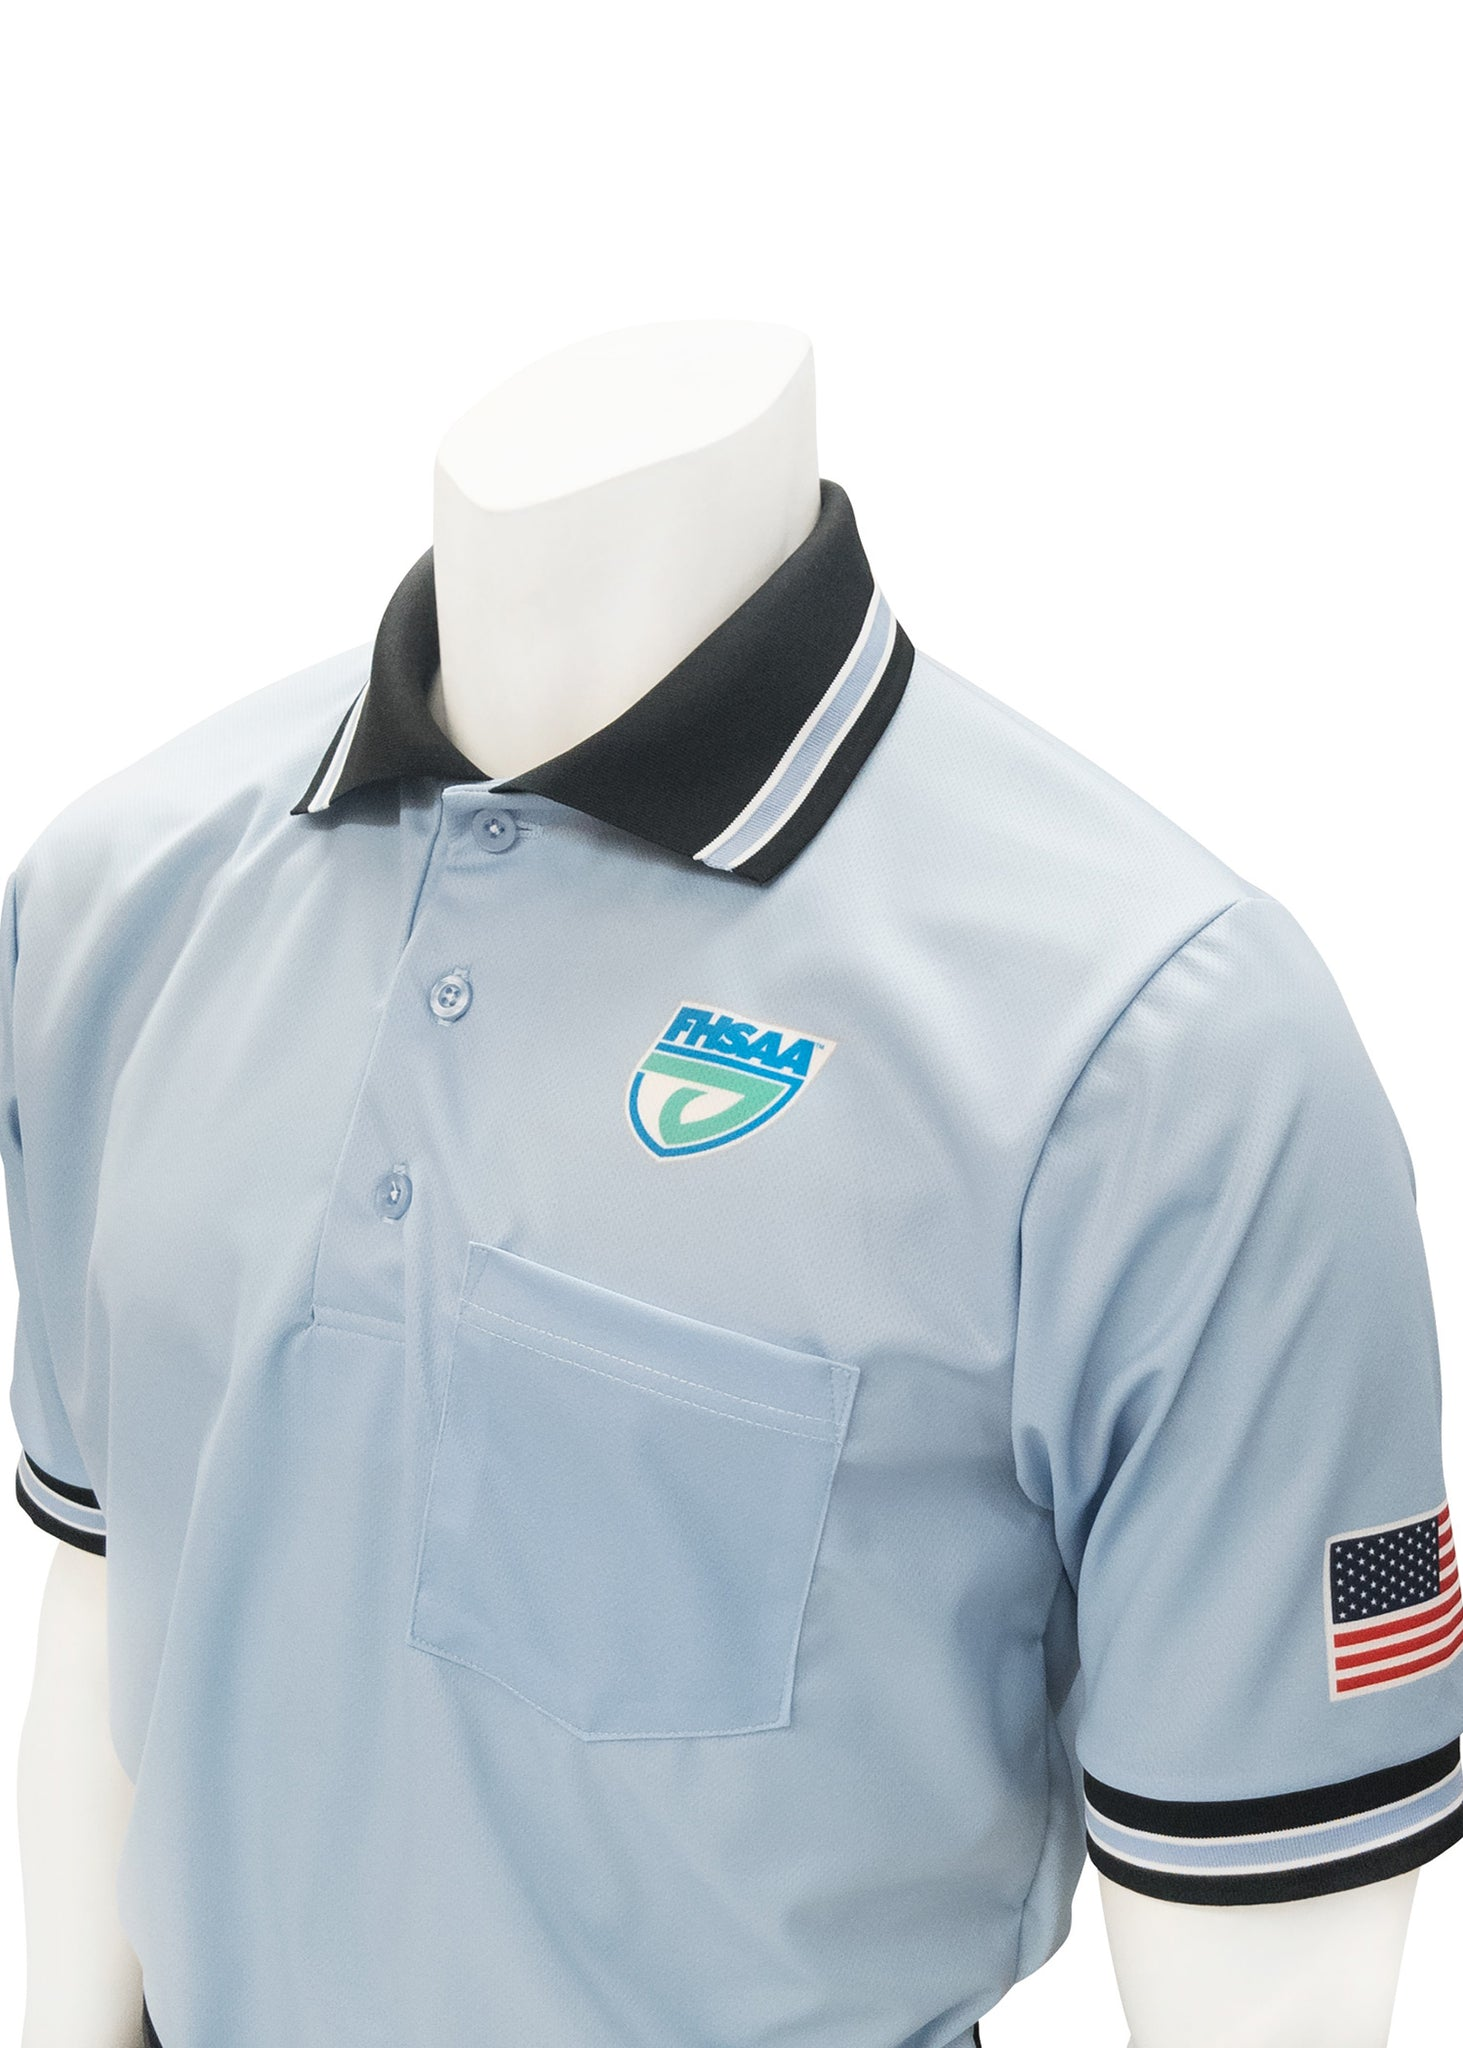 "USA300FL - Smitty ""Made in USA"" - Baseball Men's Short Sleeve Shirt Carolina Blue"